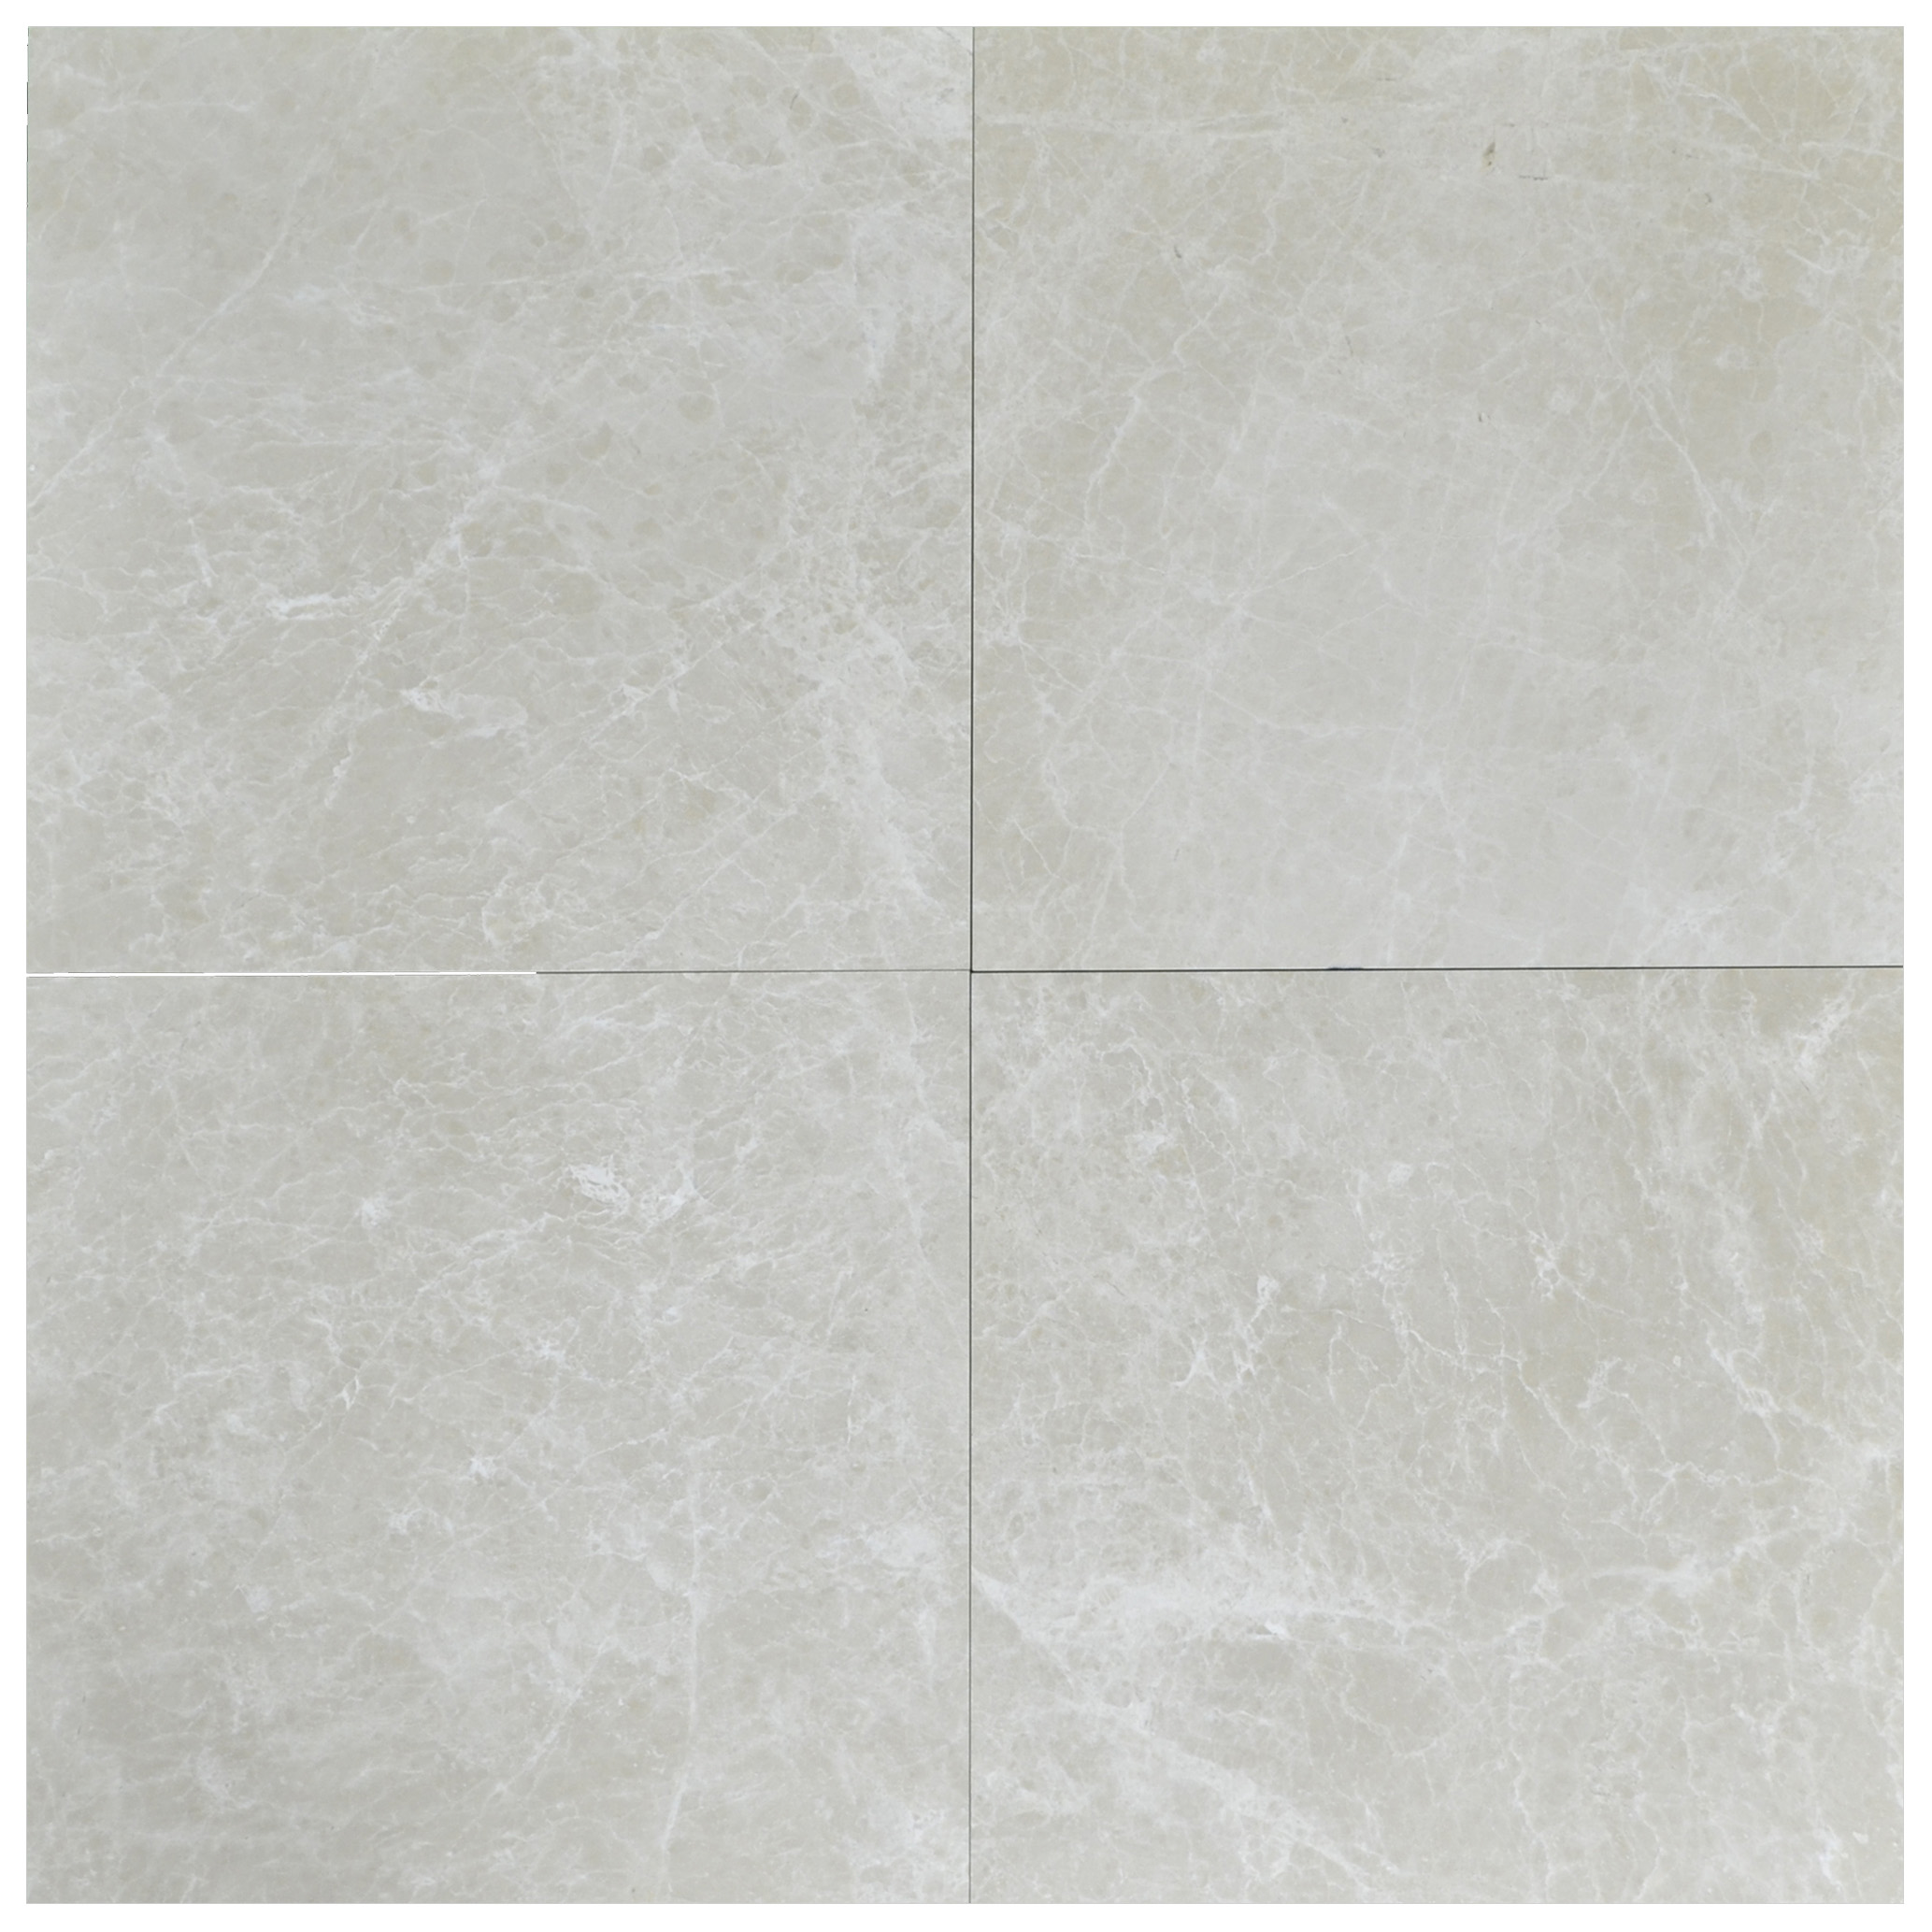 Botticino Beige Polished Marble Tiles 24x24-marble sale-Atlantic Stone